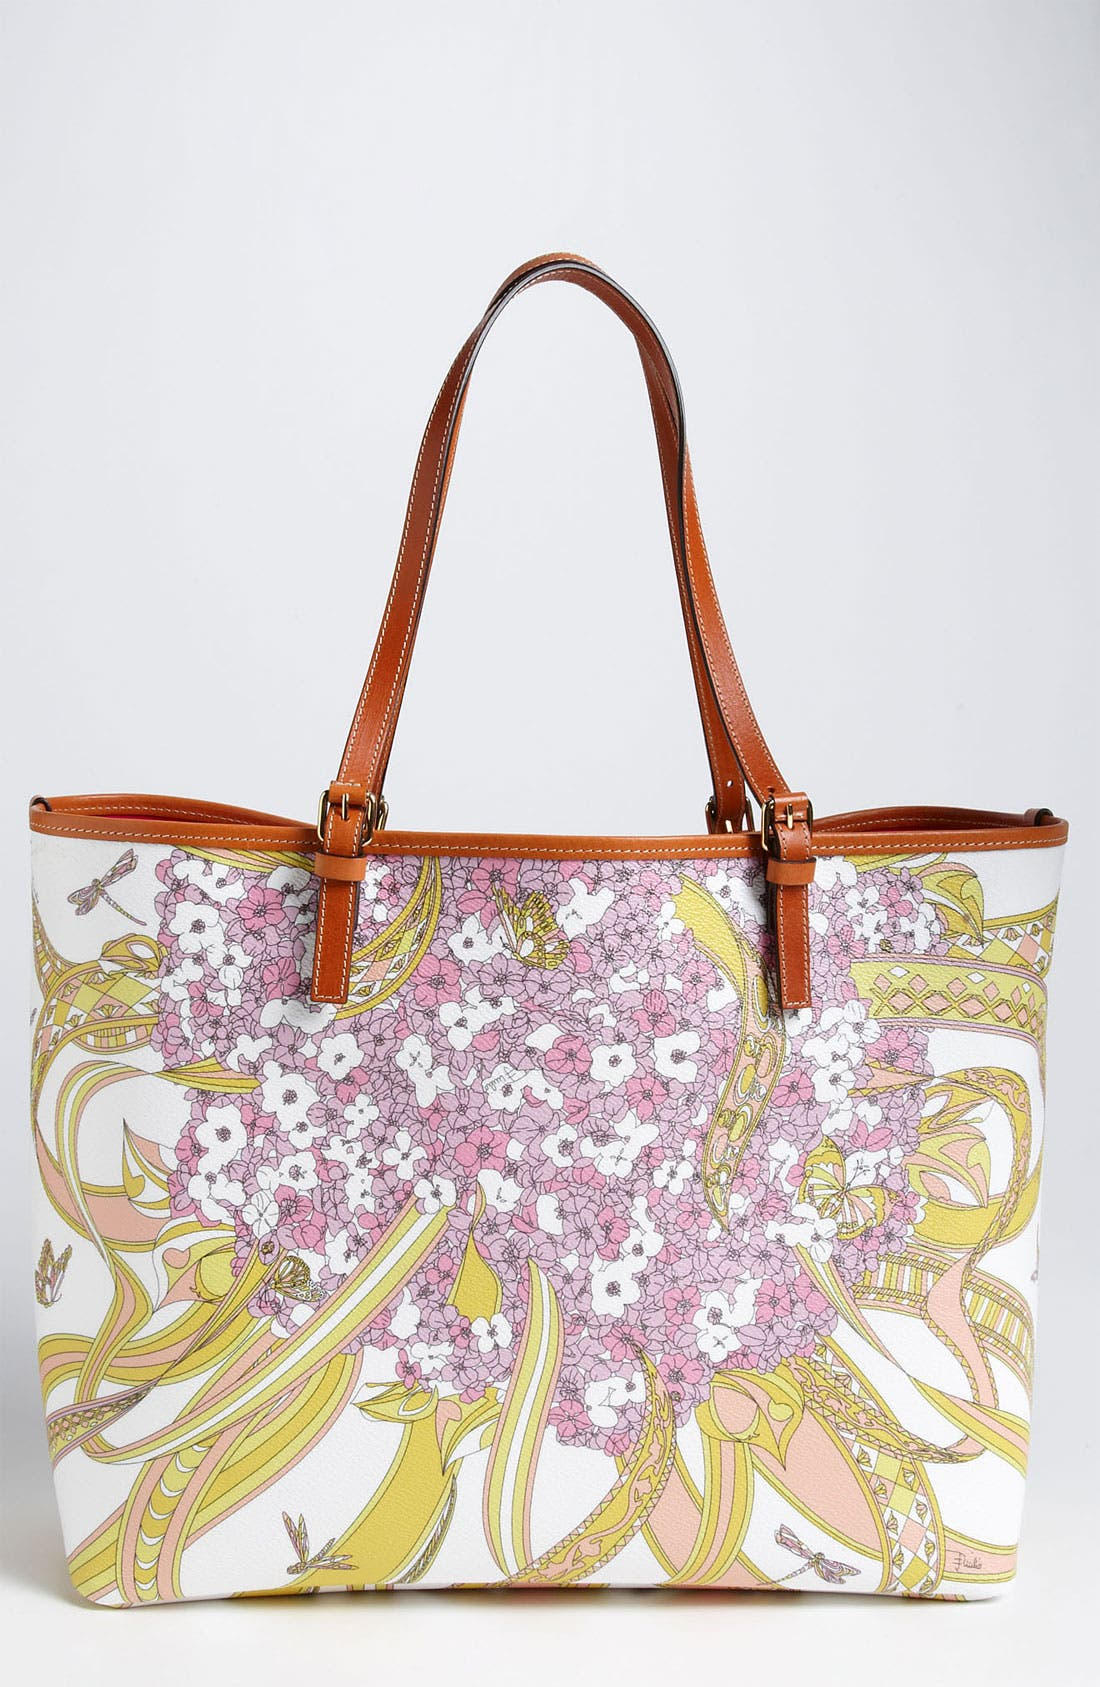 Main Image - Emilio Pucci 'Large' Shopper